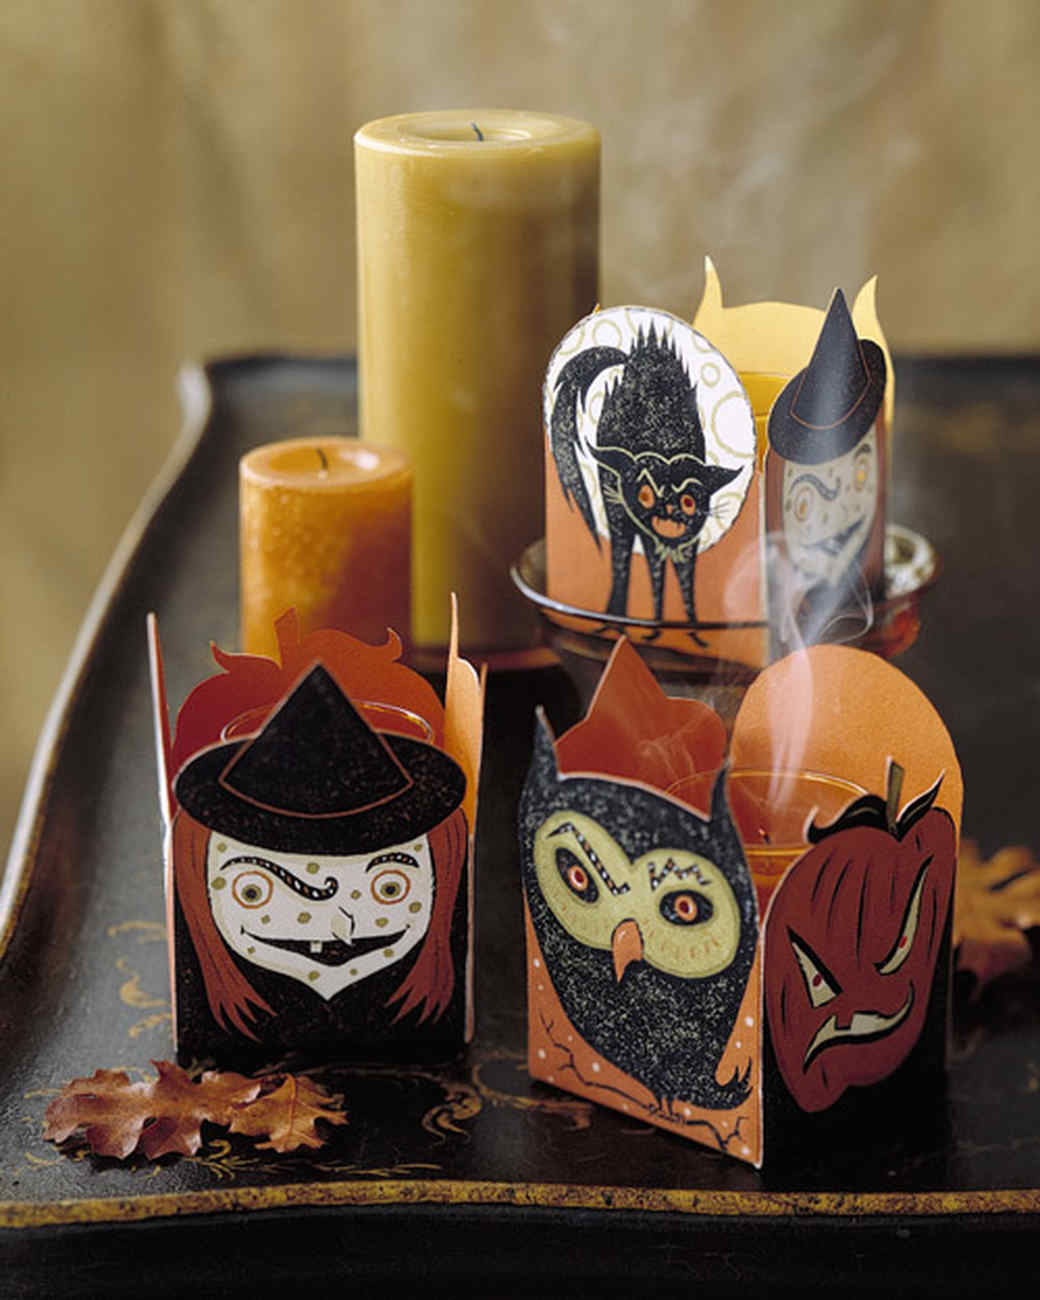 Creepy Clip-Art Candle Containers